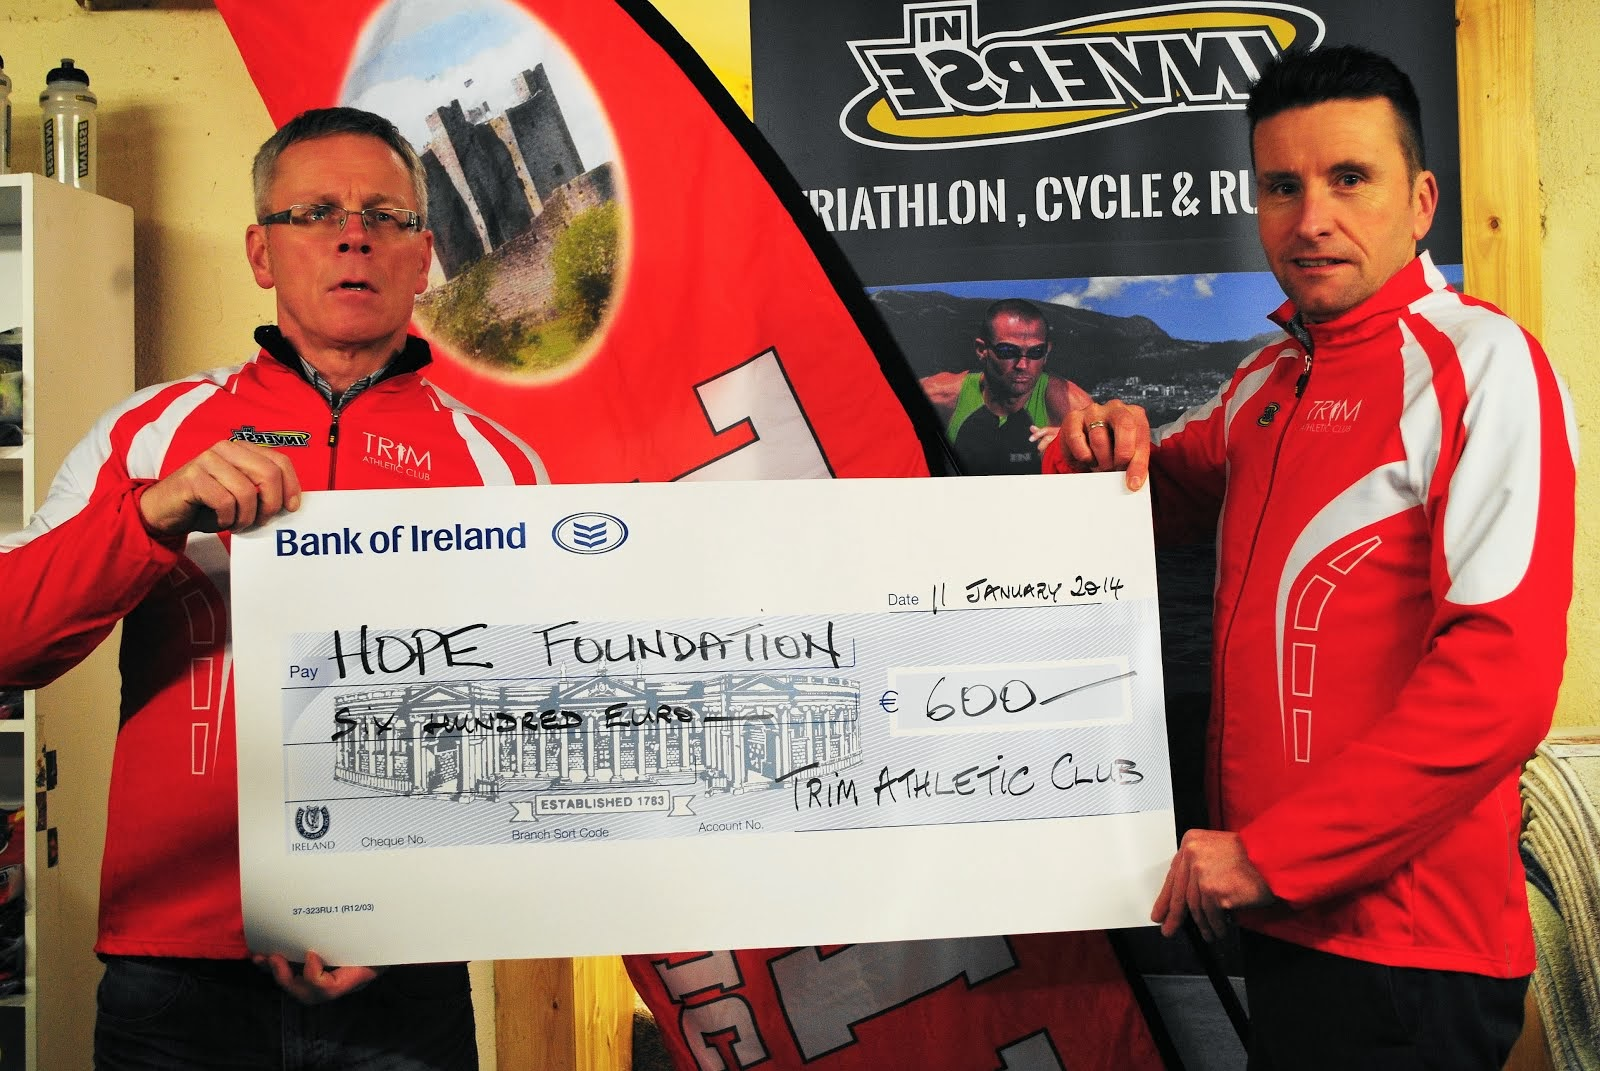 Hope Foundation receive €600